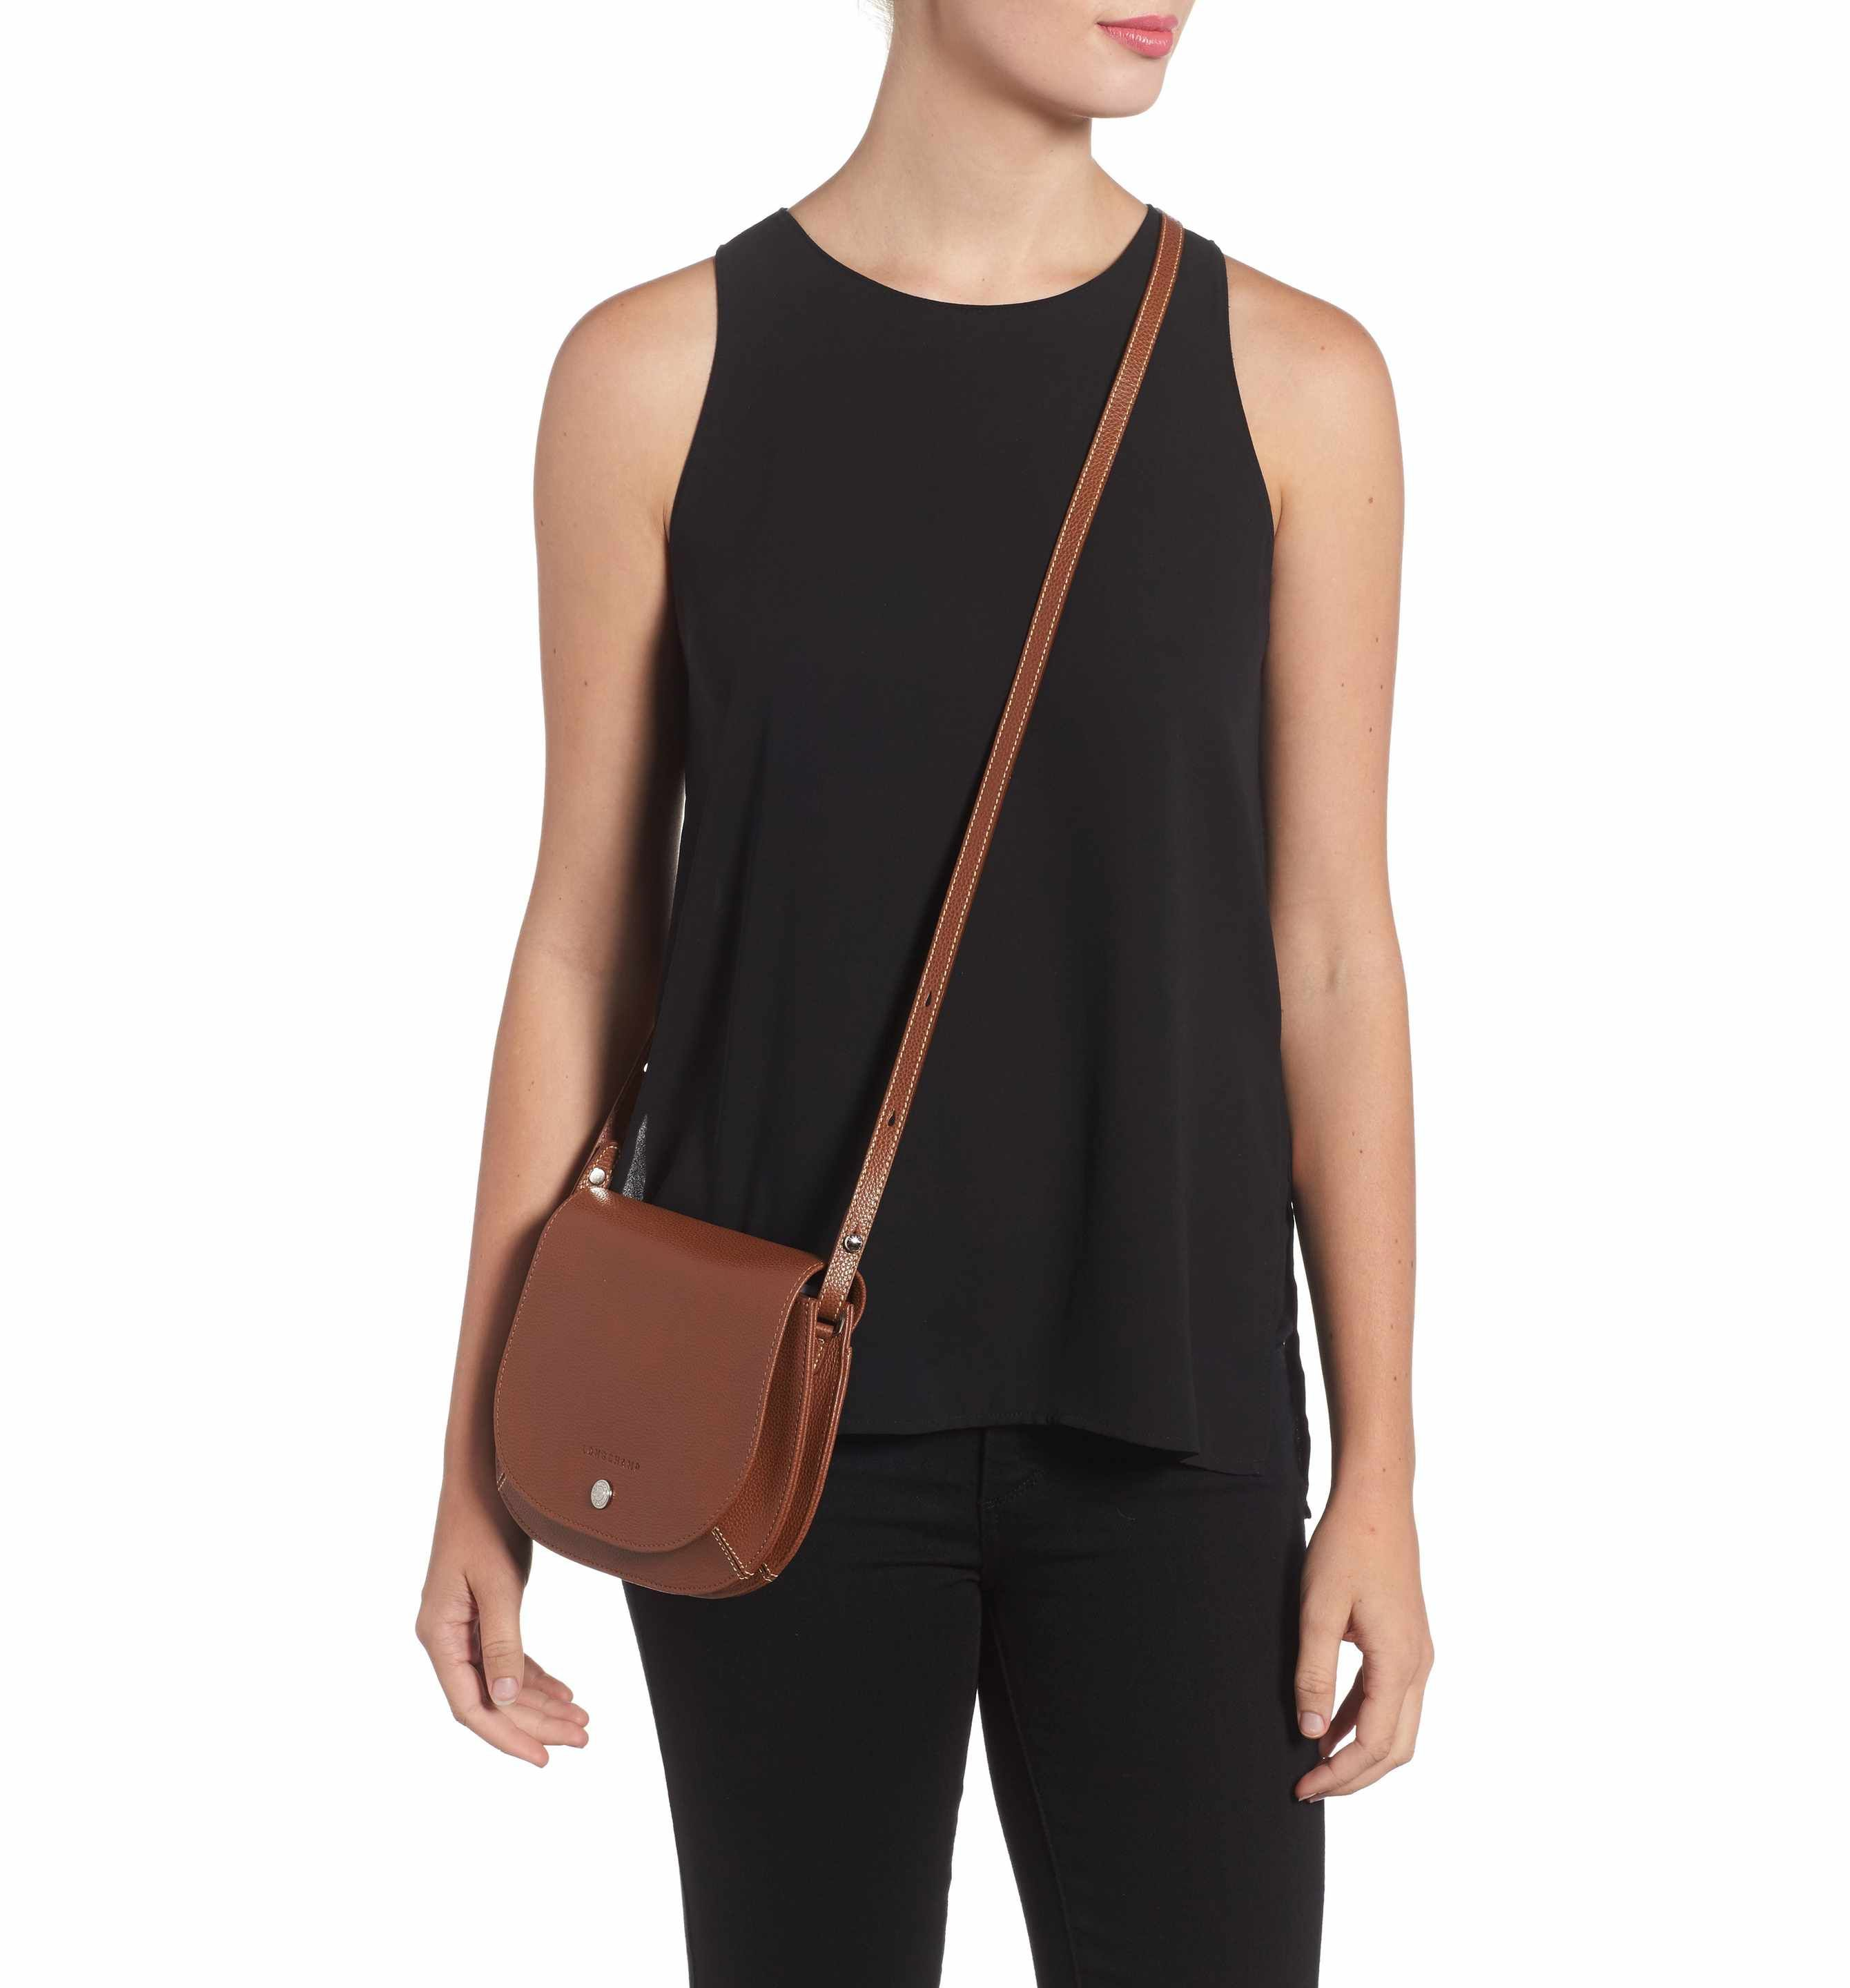 Main Image - Longchamp Small Le Foulonne Leather Crossbody Bag ... 6663fab9b0